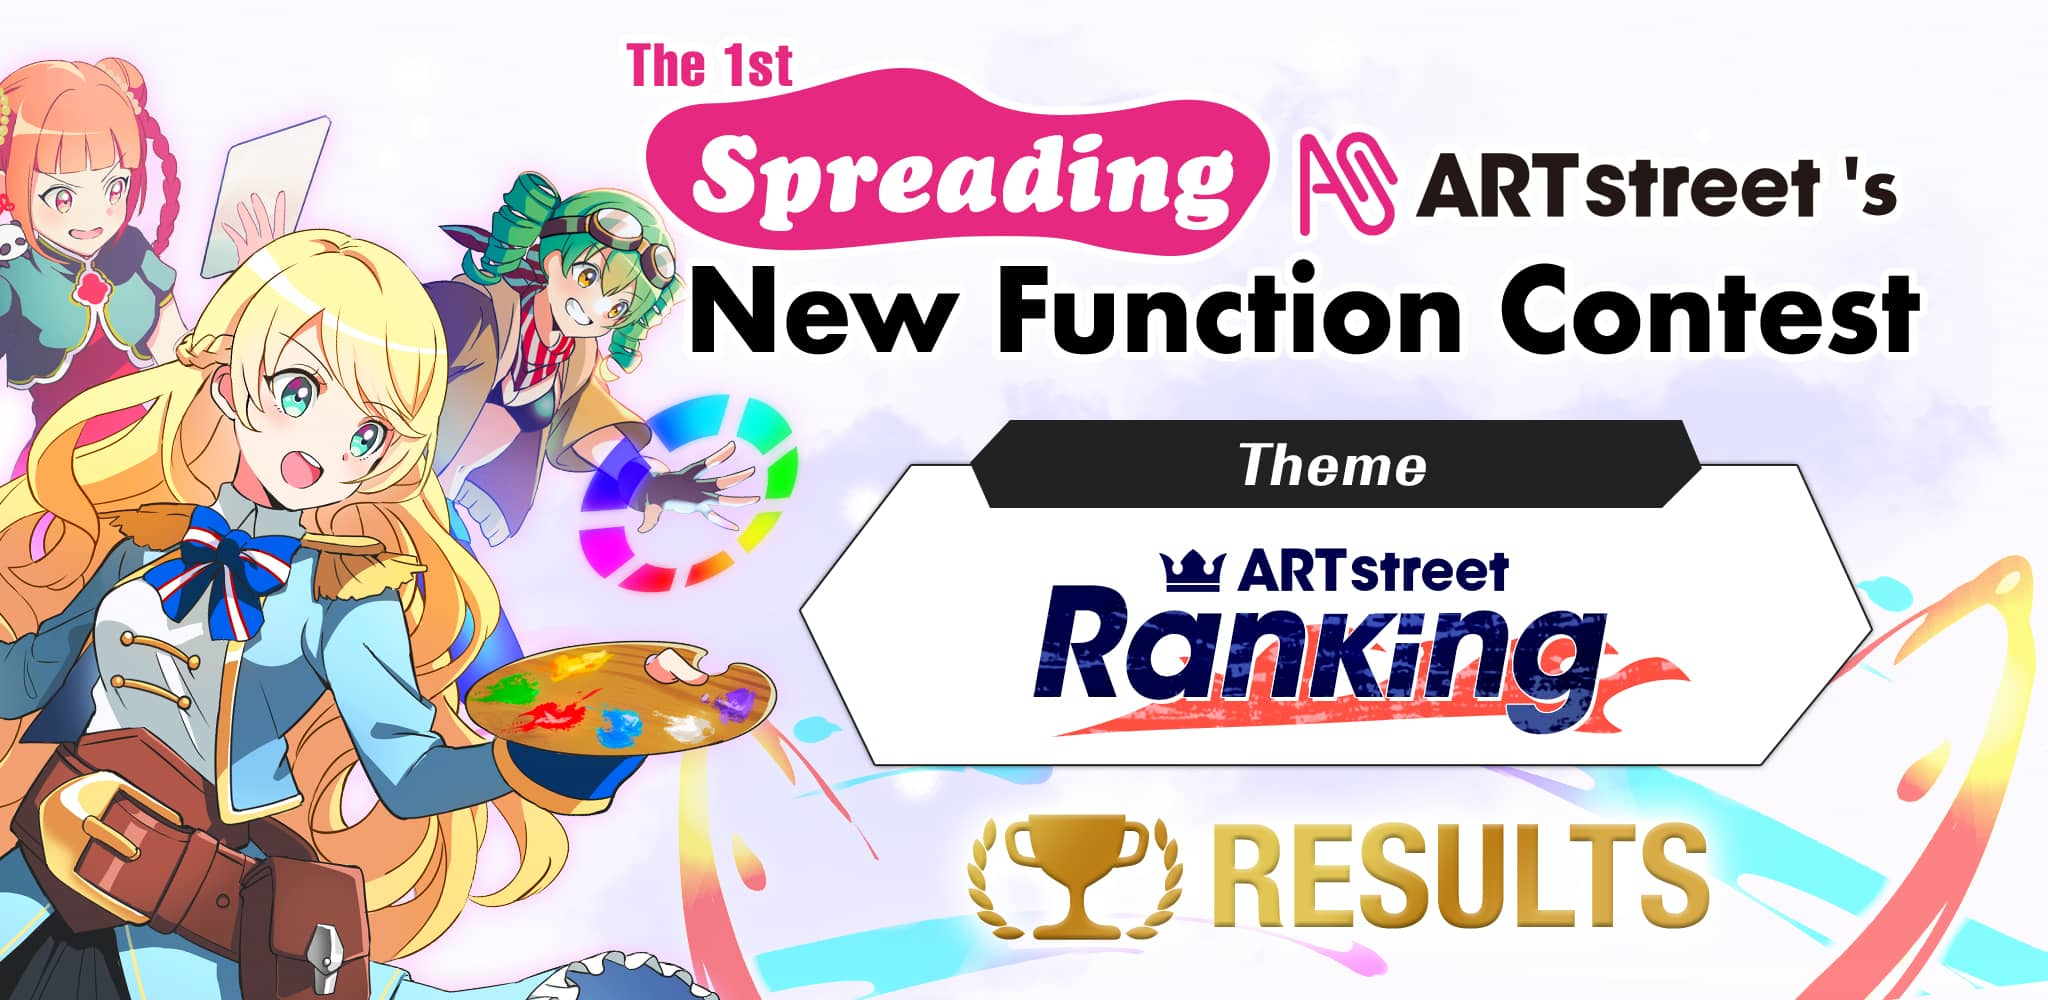 Spreading ART street's New Function Contest - The 1st Theme: ART street Ranking Results | Contest - ART street by MediBang